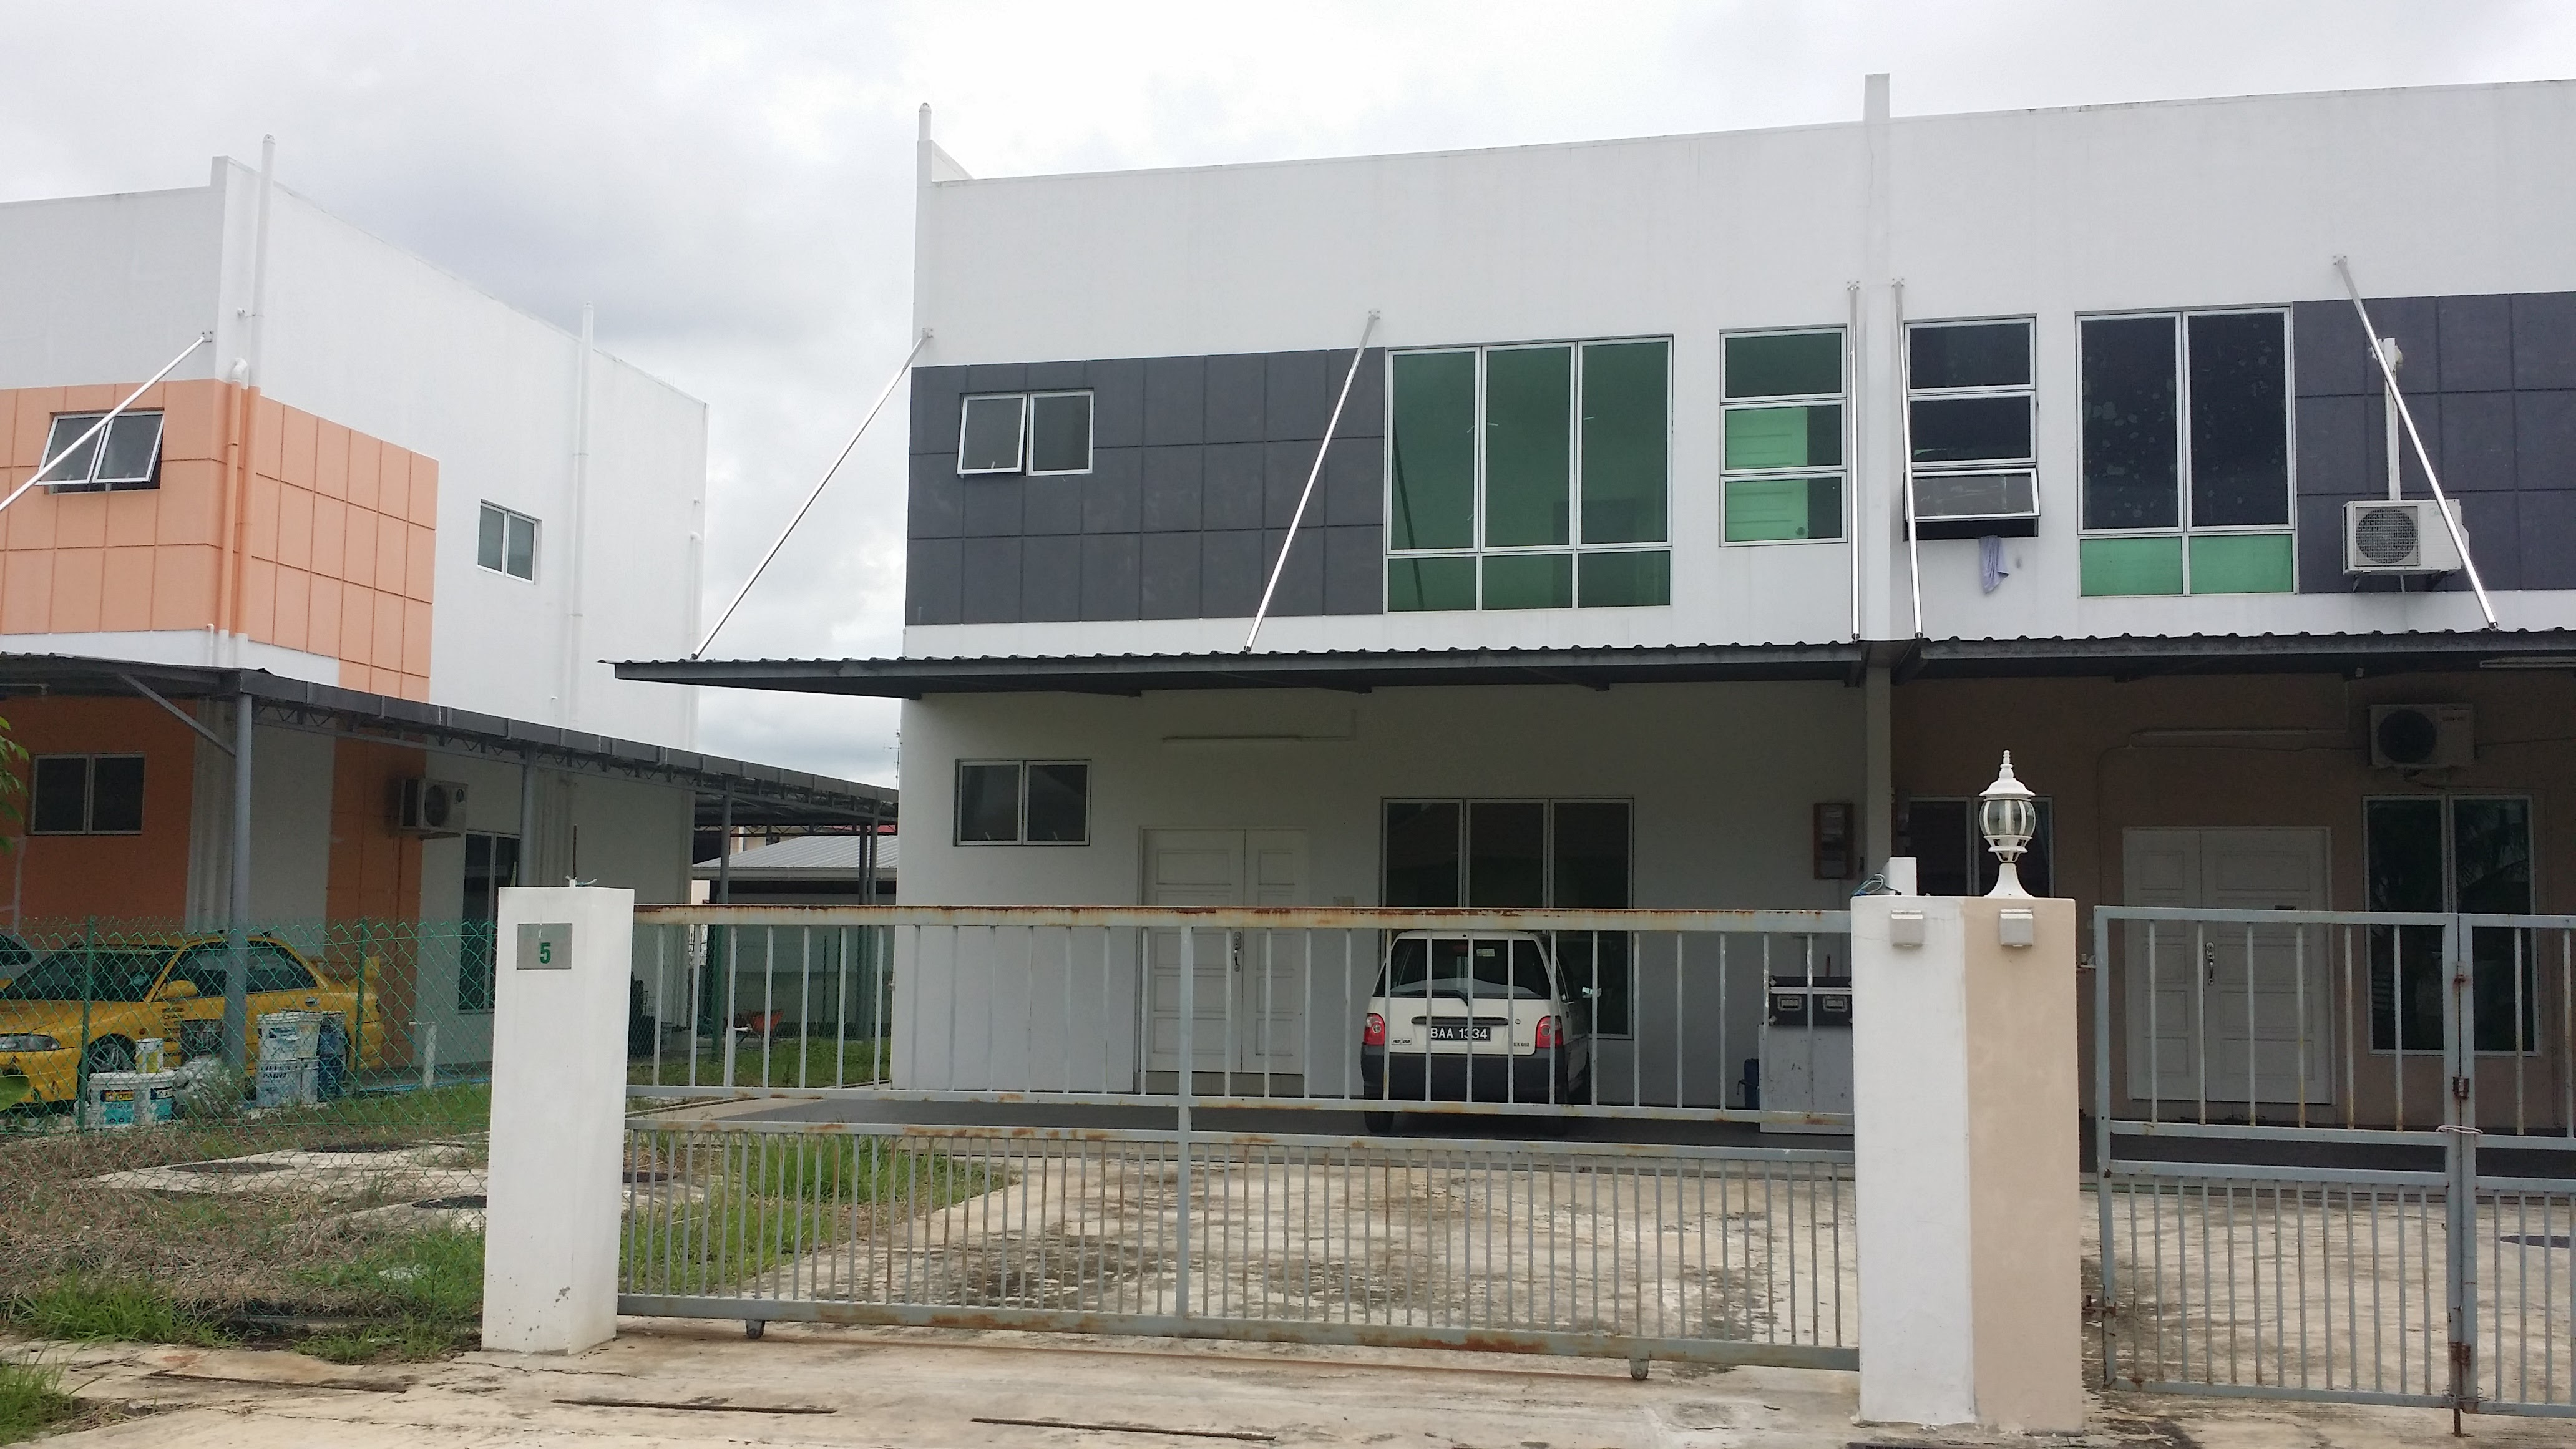 2 Storey House For Sale Of Pan Villa Properties Brand New 2 Storey Terrace House